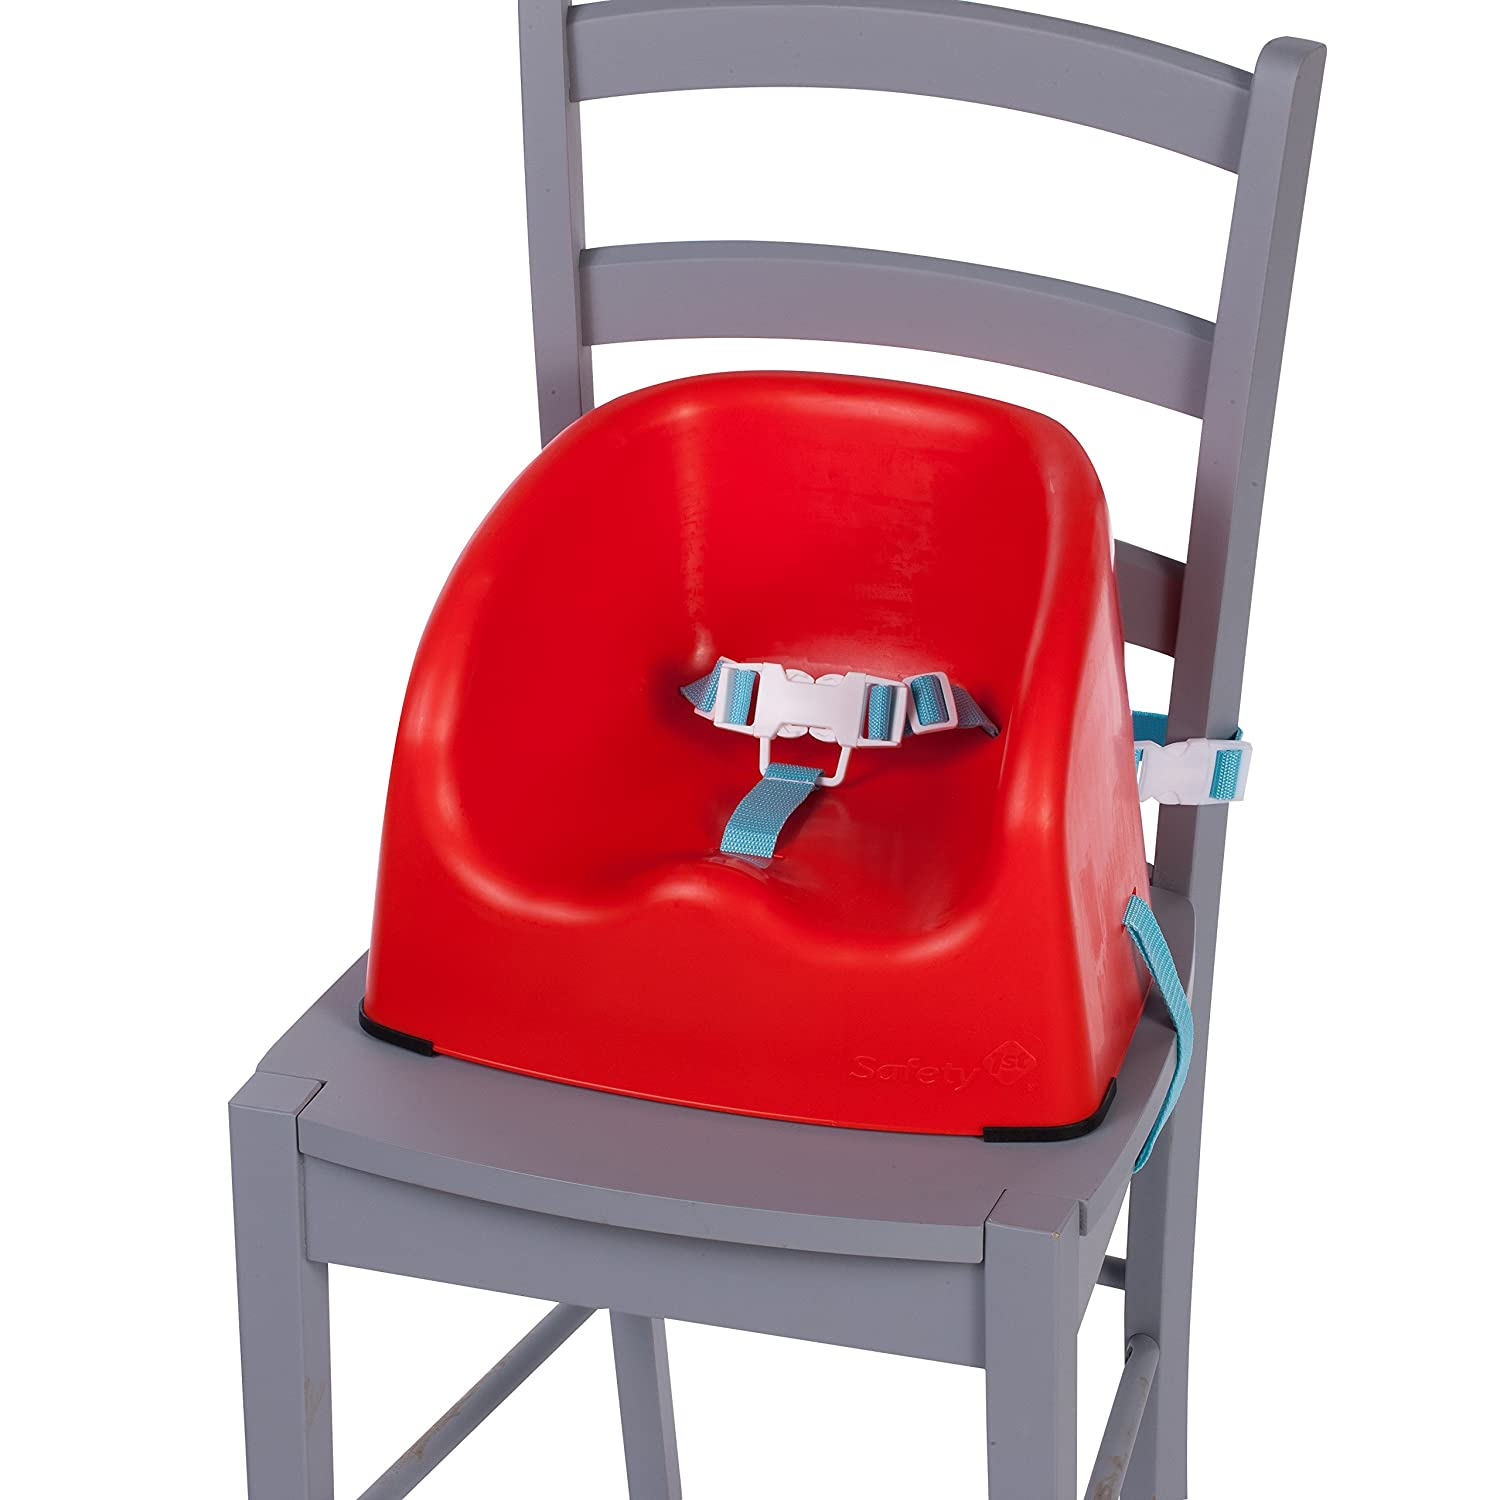 Safety 1st Essential Booster (Red) Children Seat Safe (Dispatched From UK) 2776260000